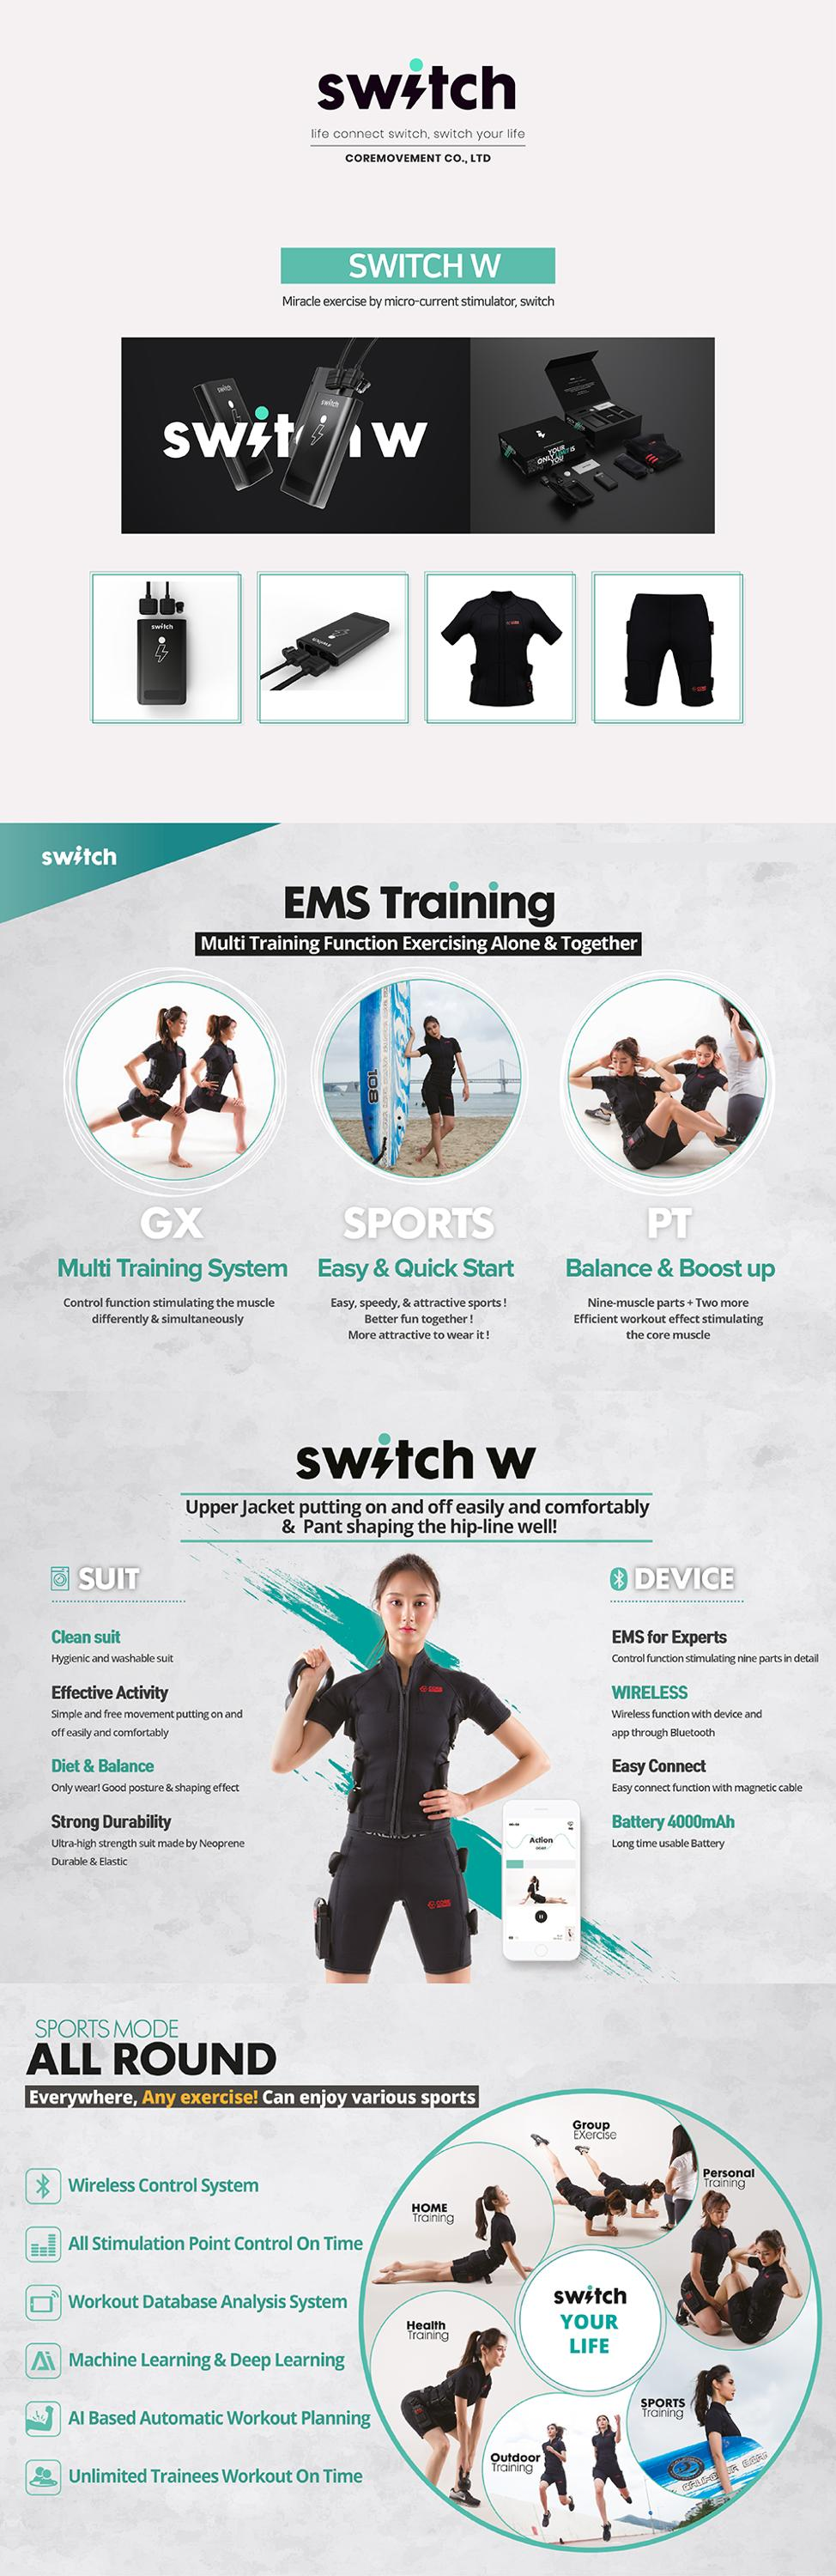 [SWITCH W] High Quality Korea Ems Training Suit for Personal Group Workout Machine Full Body Ems Suit Made in Korea